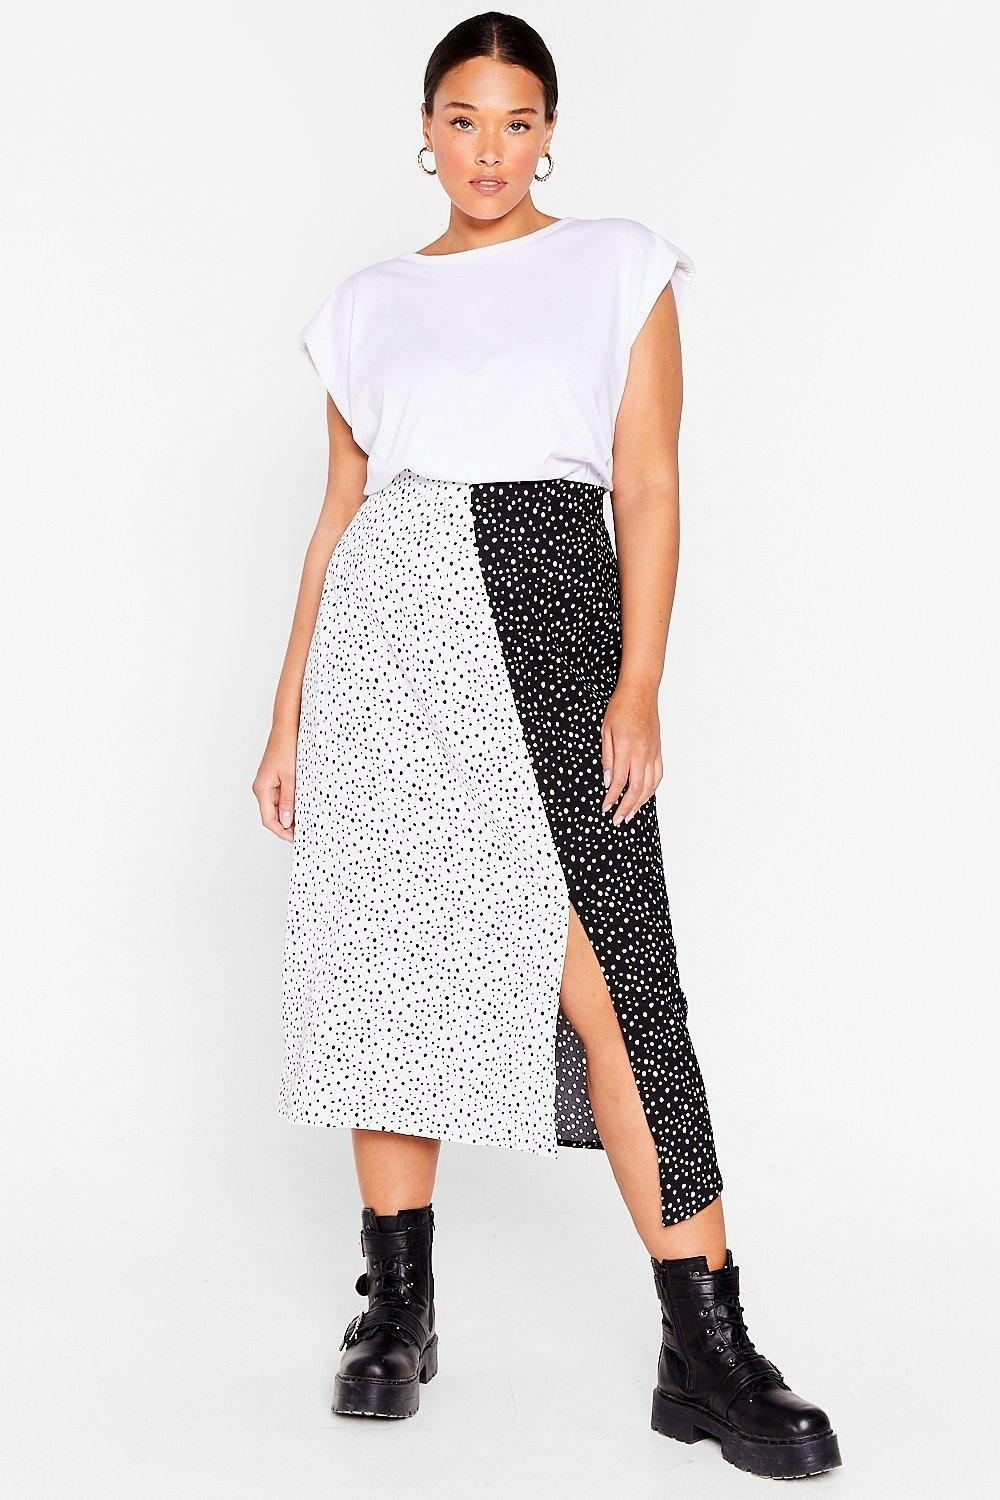 Model wearing the black and white polka dot skirt with small side slit